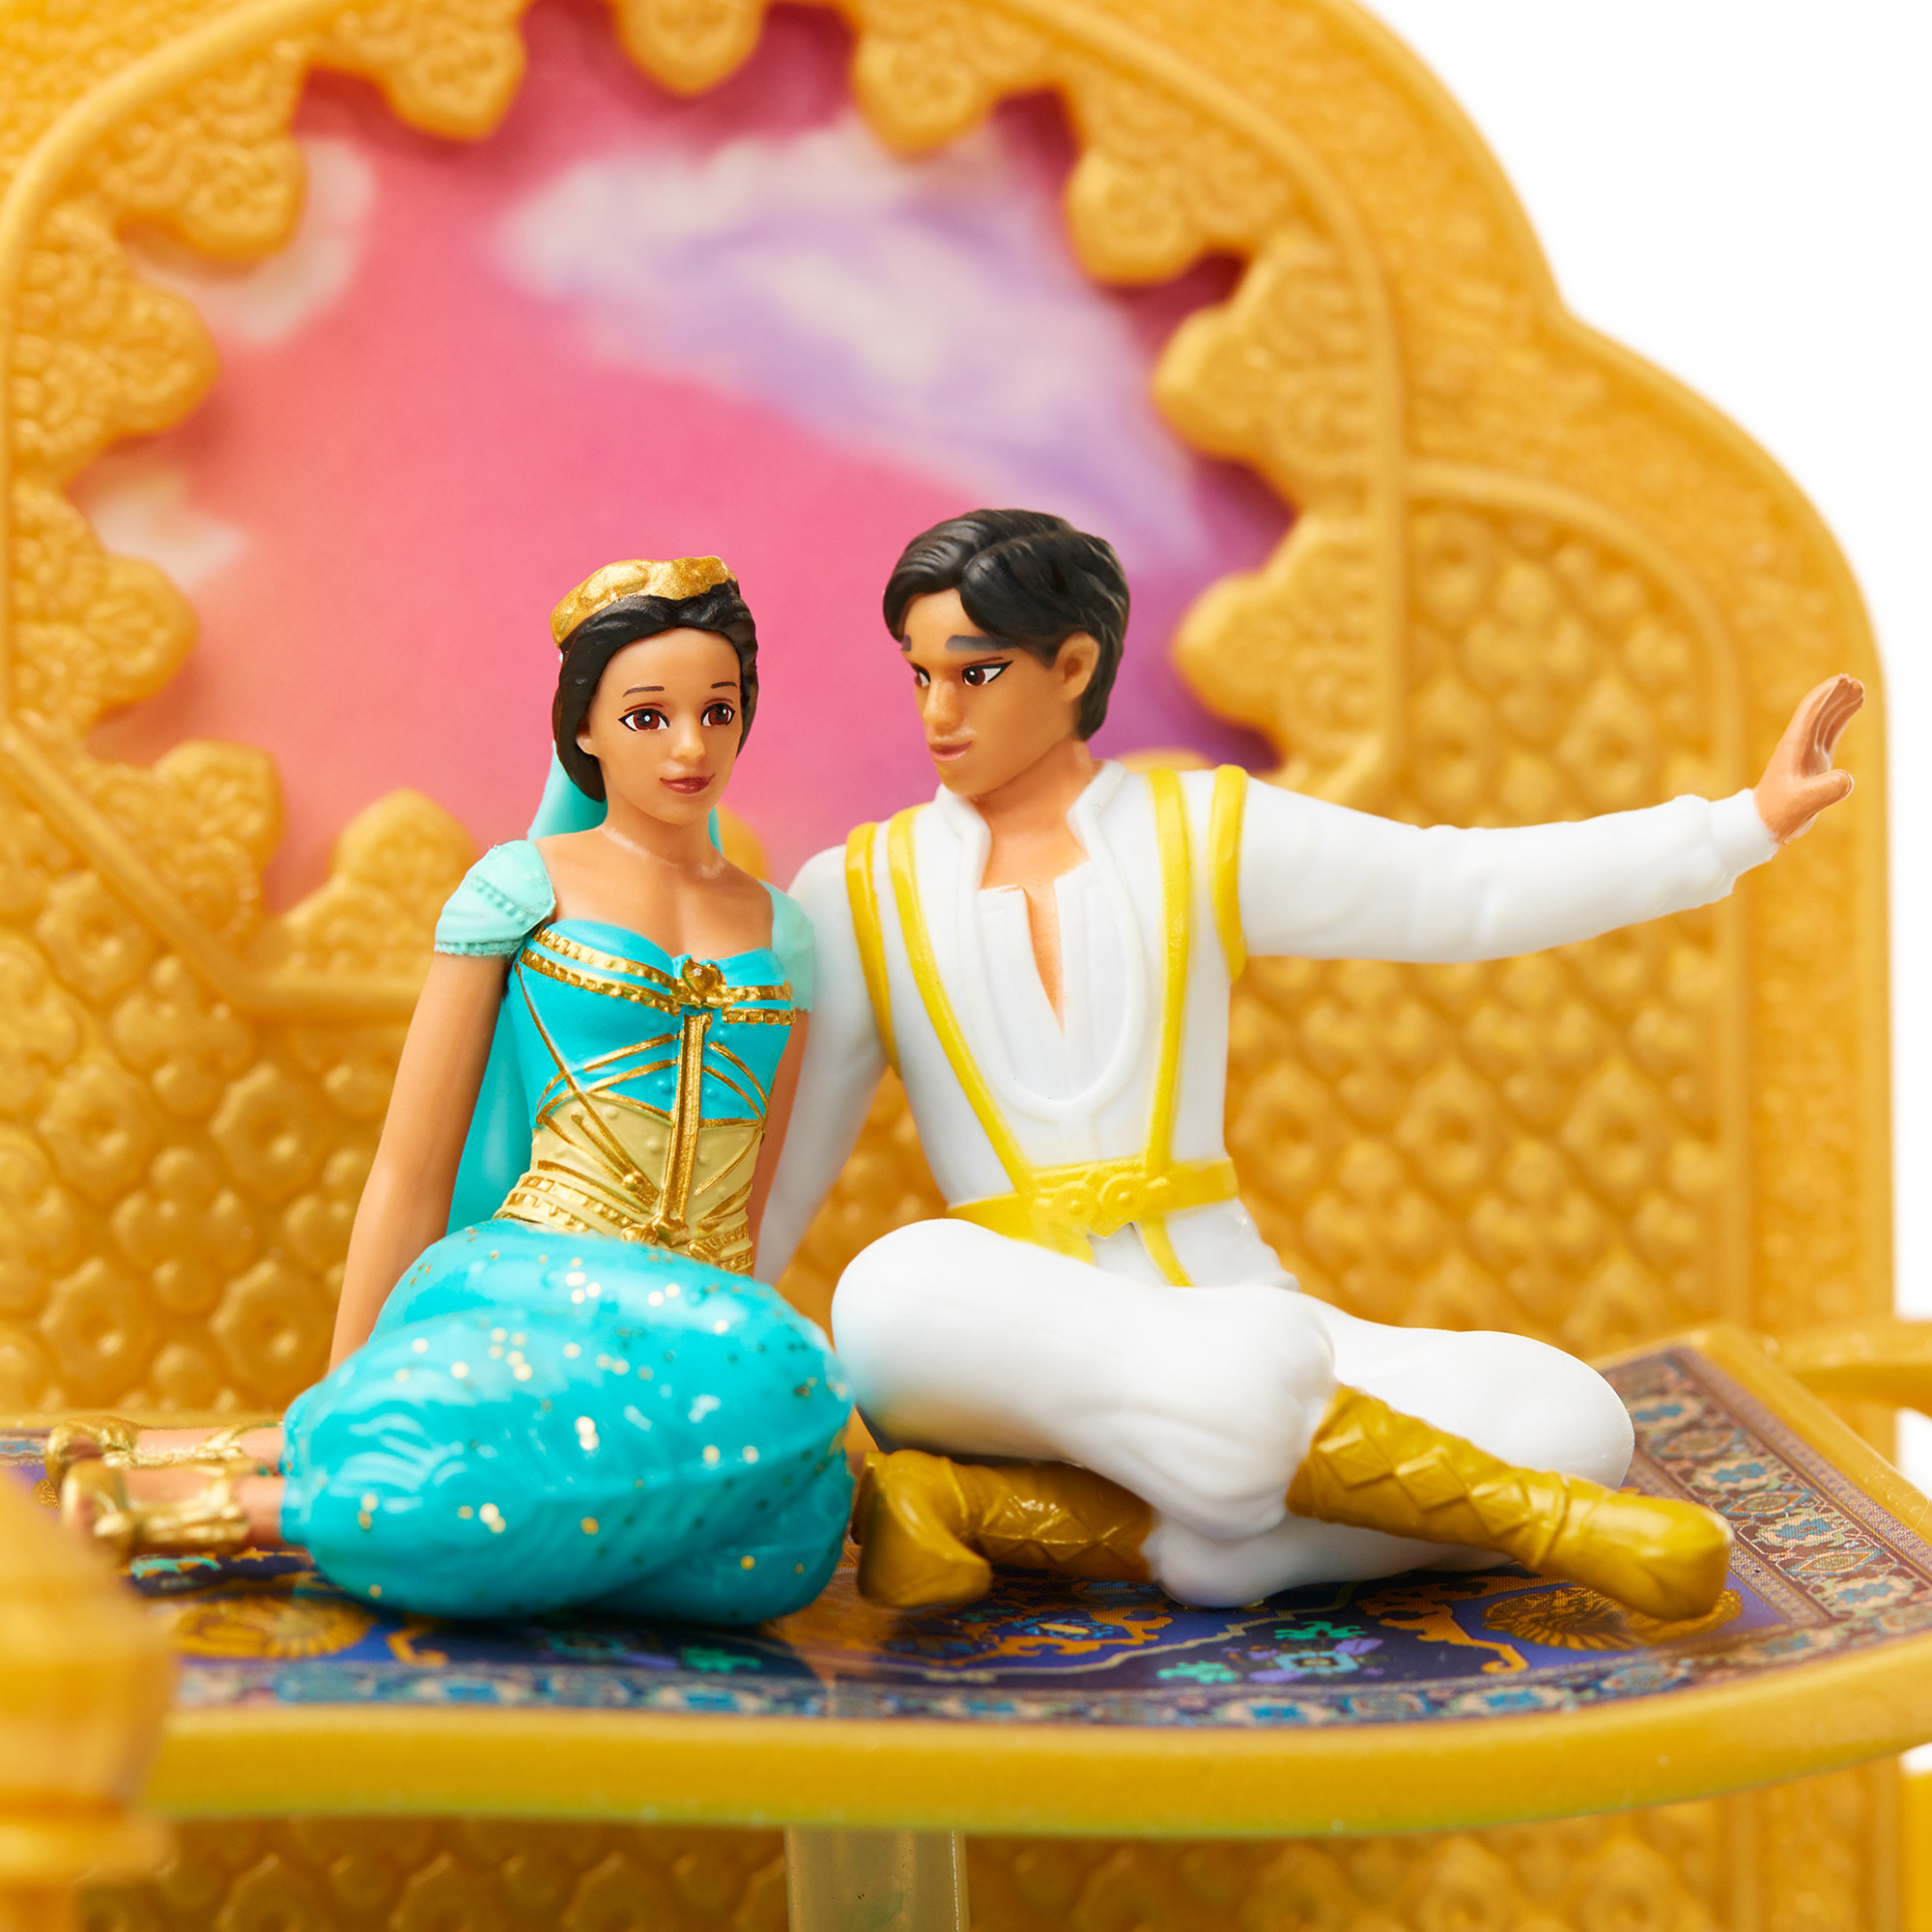 Disney Aladdin Feature Jewelry Box